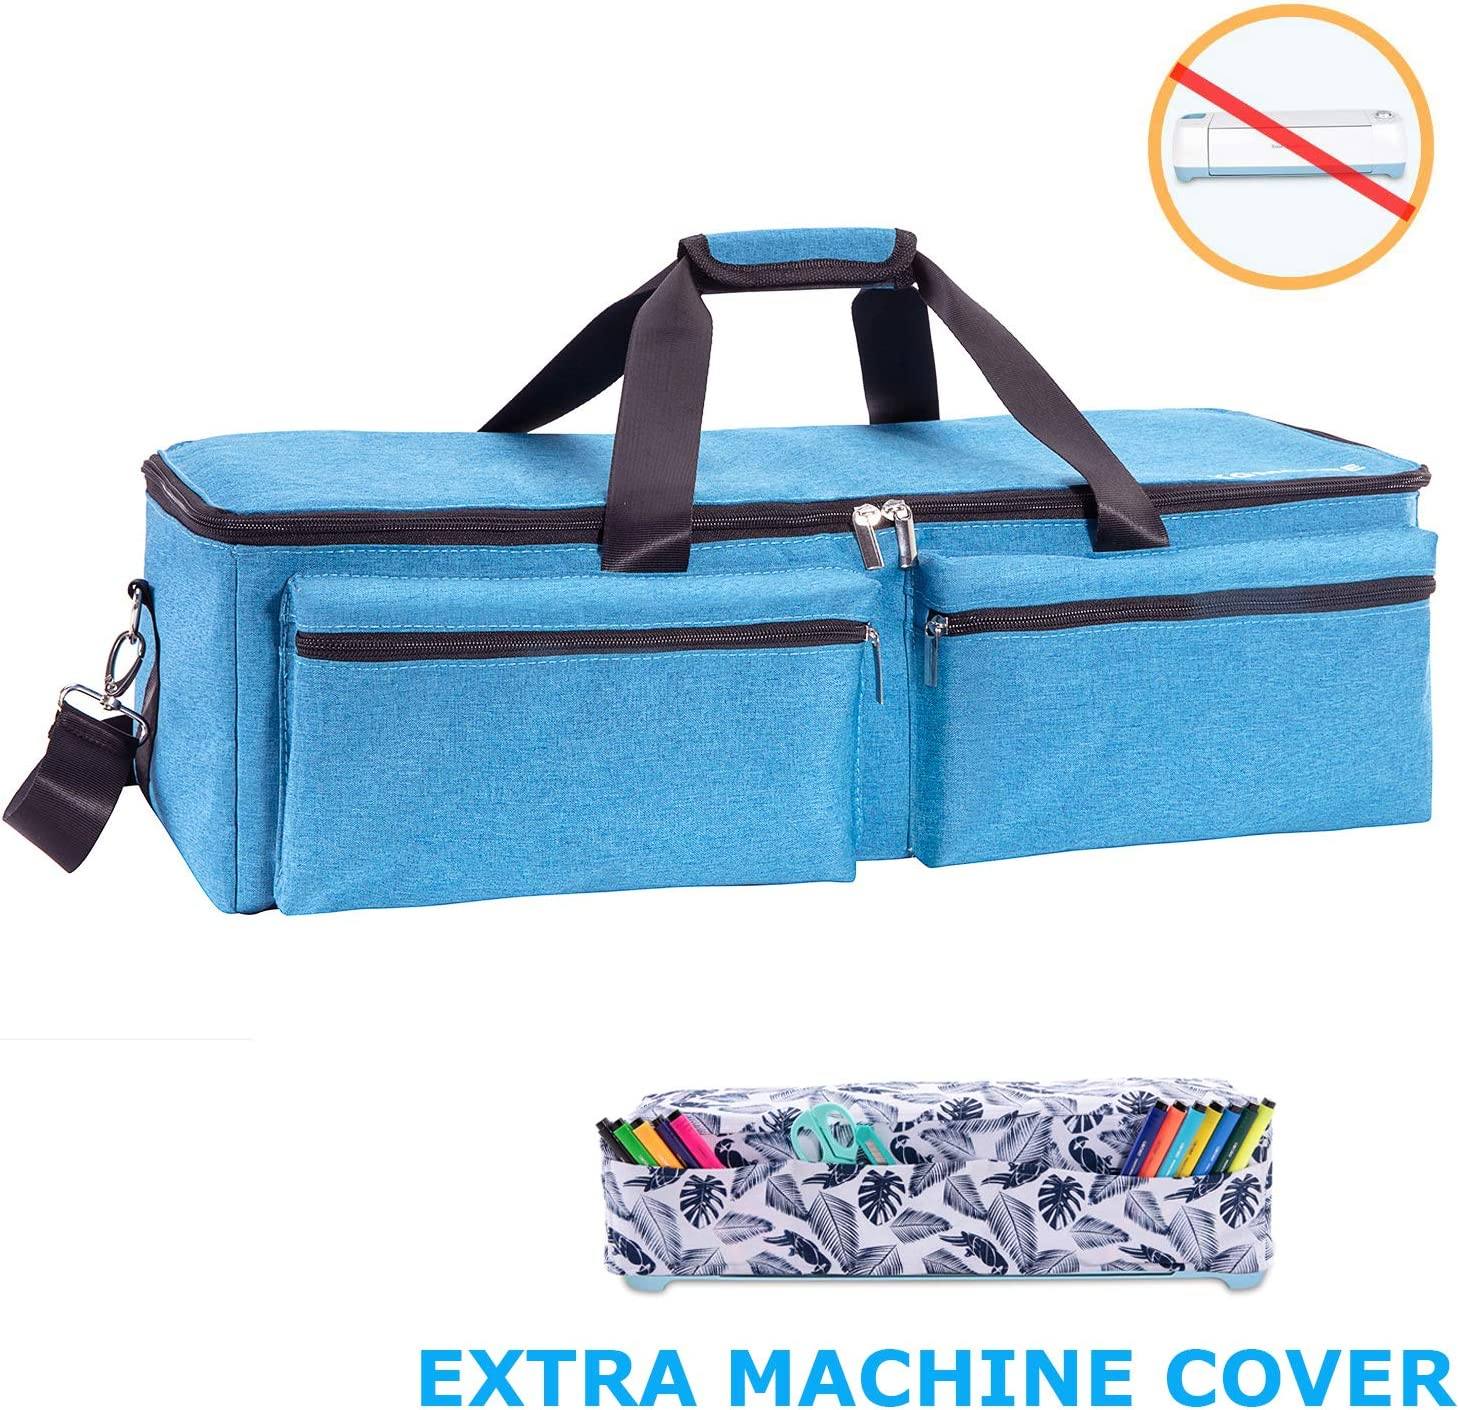 Waterproof Tote Bag Compatible with Cricut Explore Air and Supplies Pink, 1+1 CACTIYE Carrying Bag Compatible with Cricut Explore Air and Maker